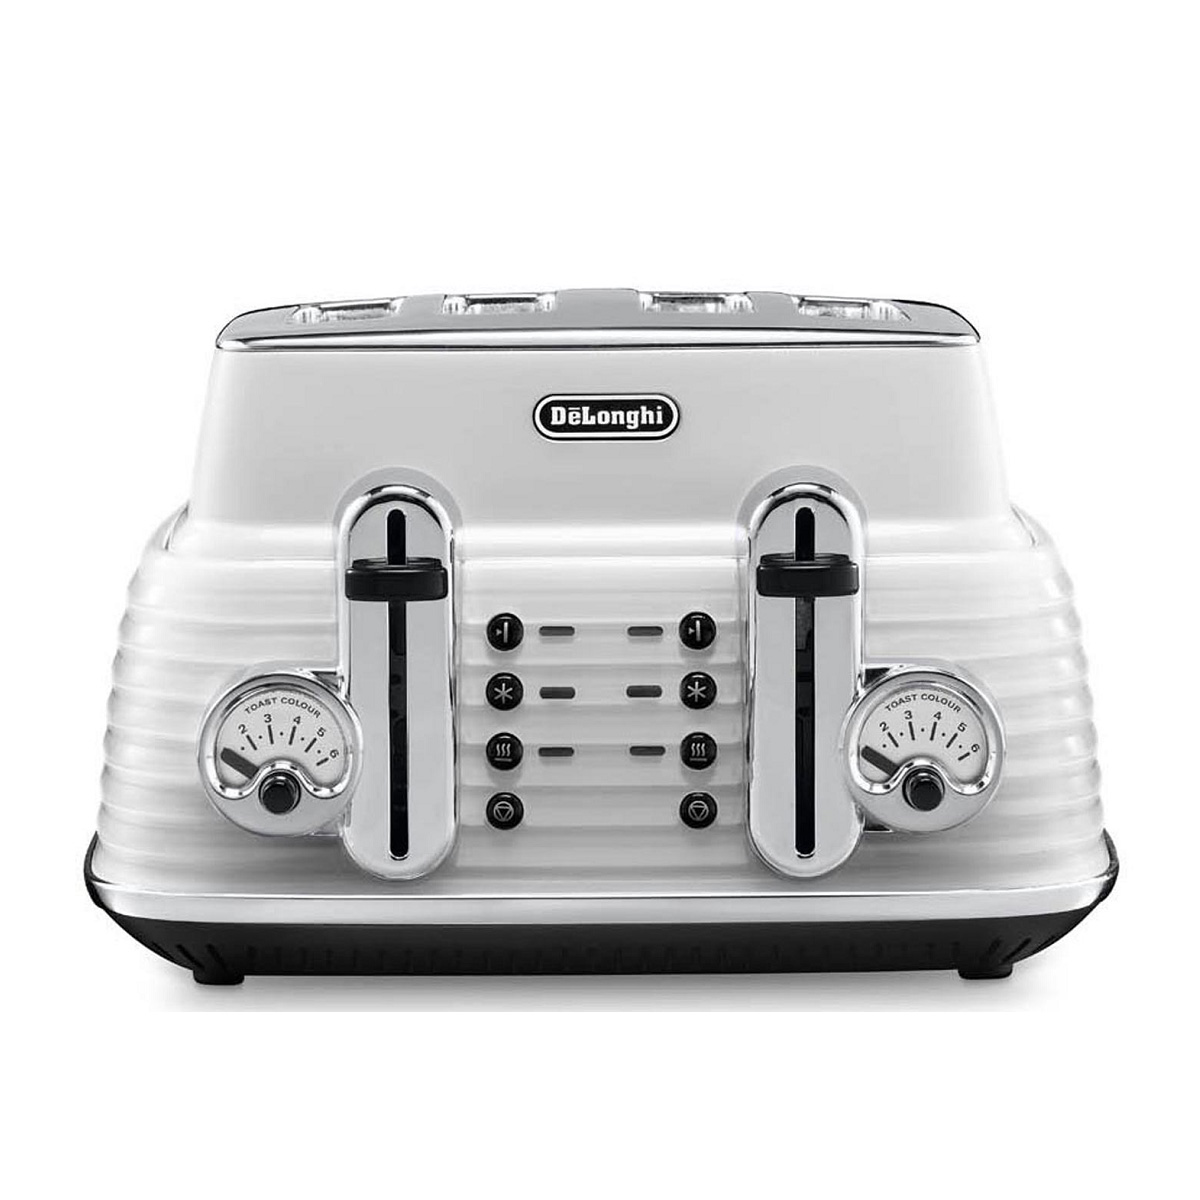 Delonghi Ctz4003w Scultura 4 Slice Toaster Home Clearance